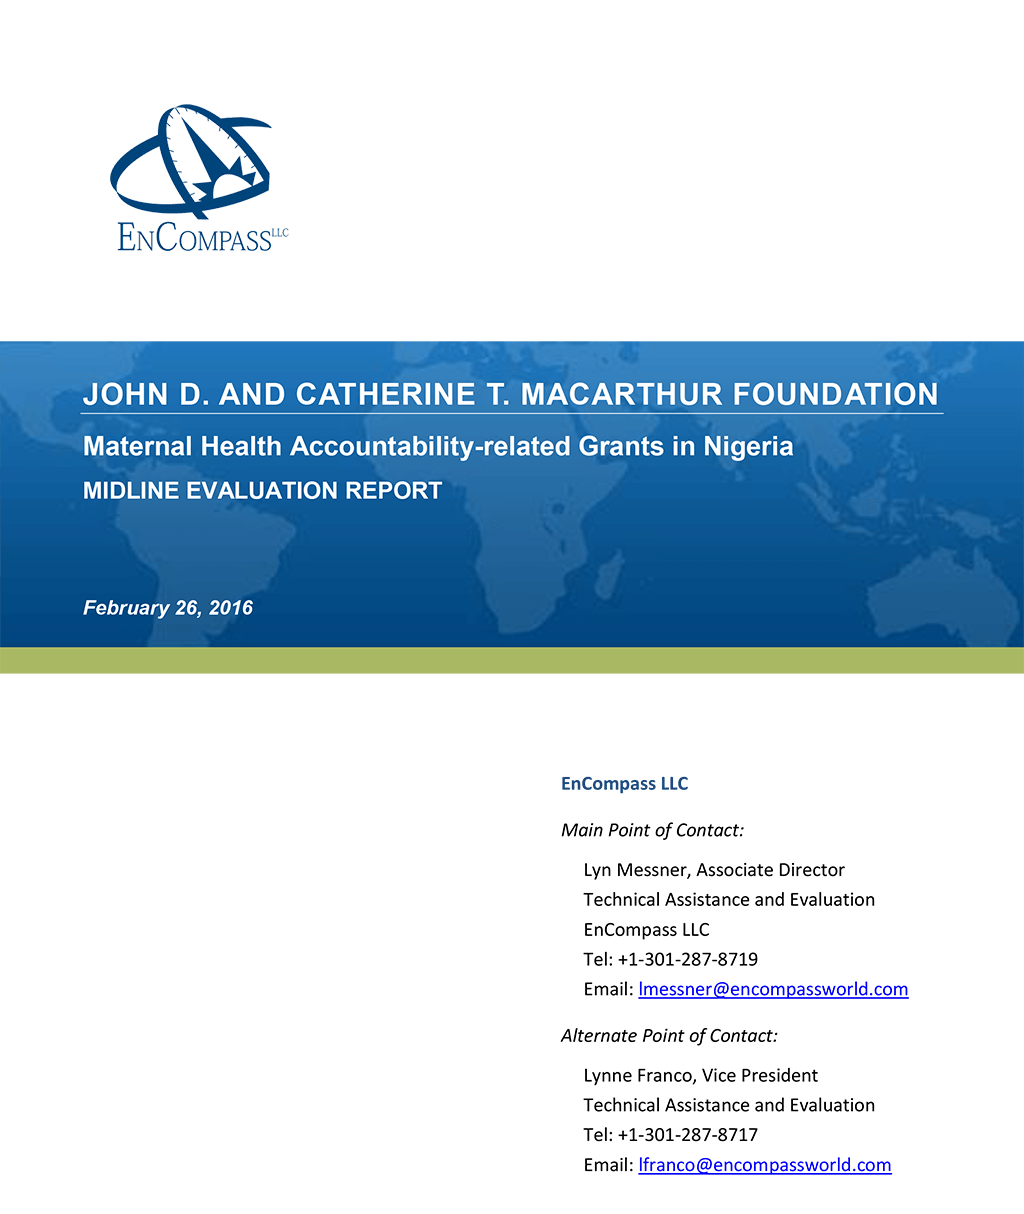 Maternal Health Accountability-related Grants in Nigeria: Midline Evaluation Report